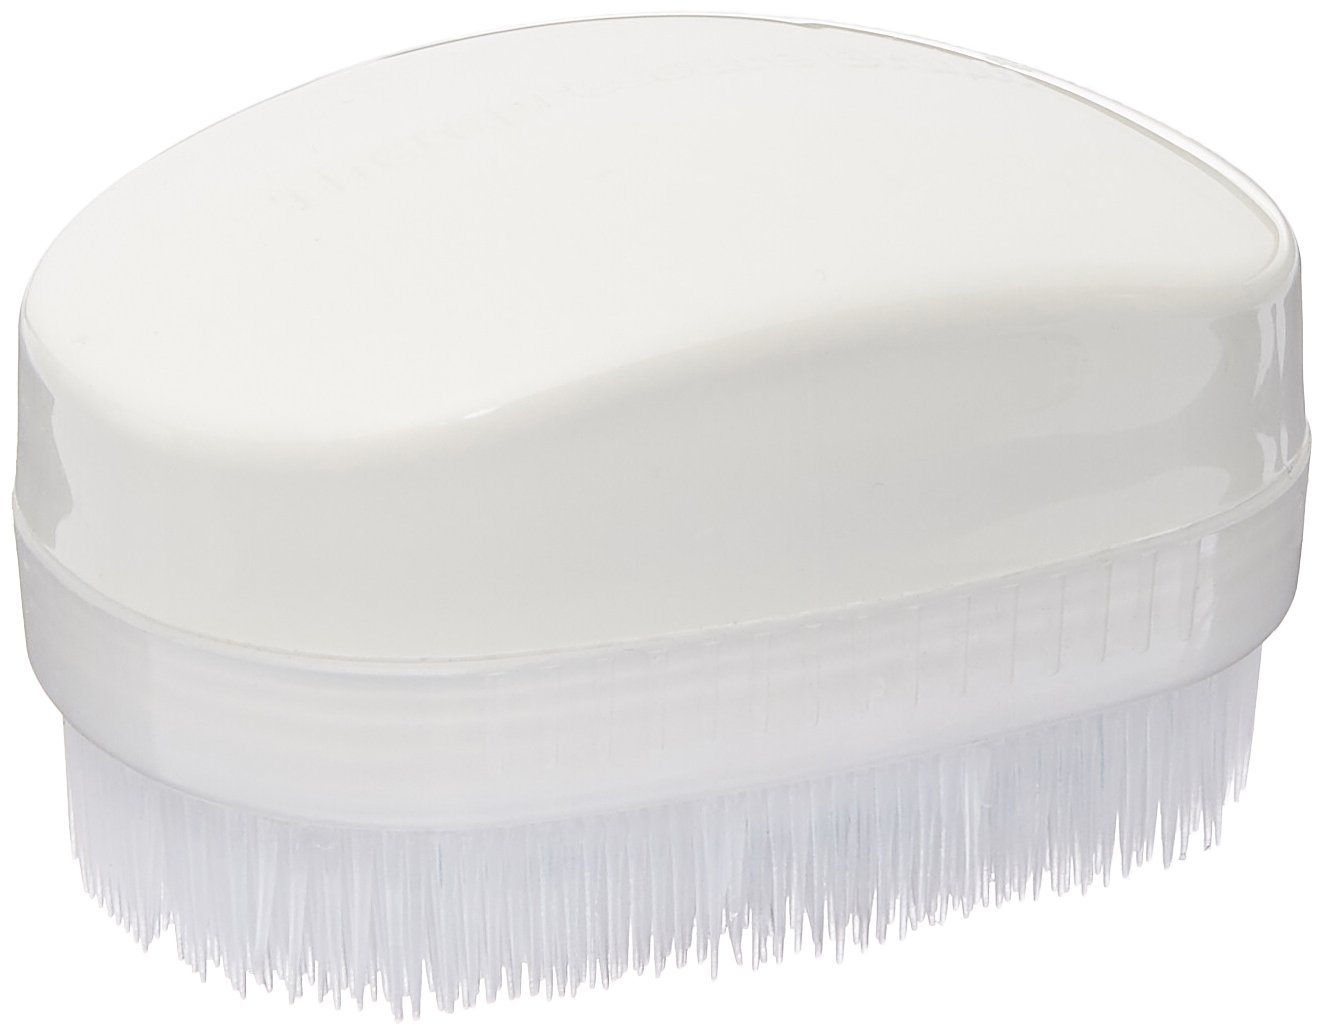 School Specialty 1-98880 Abilitations Special Needs Therapressure Brush, White Balta Brush Inc 026897